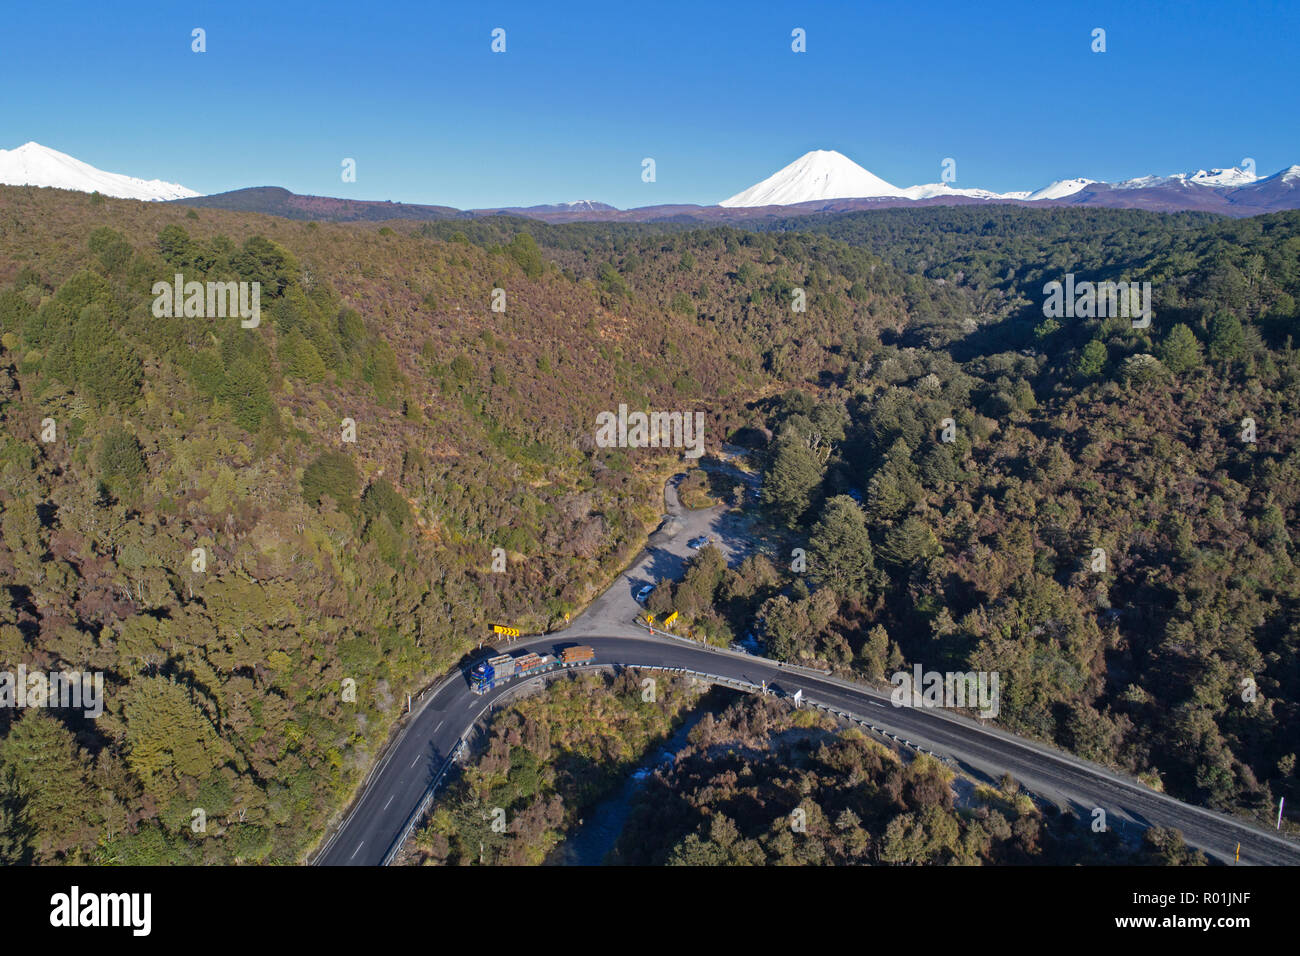 Mt Ngauruhoe and Desert Road, Tongariro National Park, Central Plateau, North Island, New Zealand - aerial - Stock Image